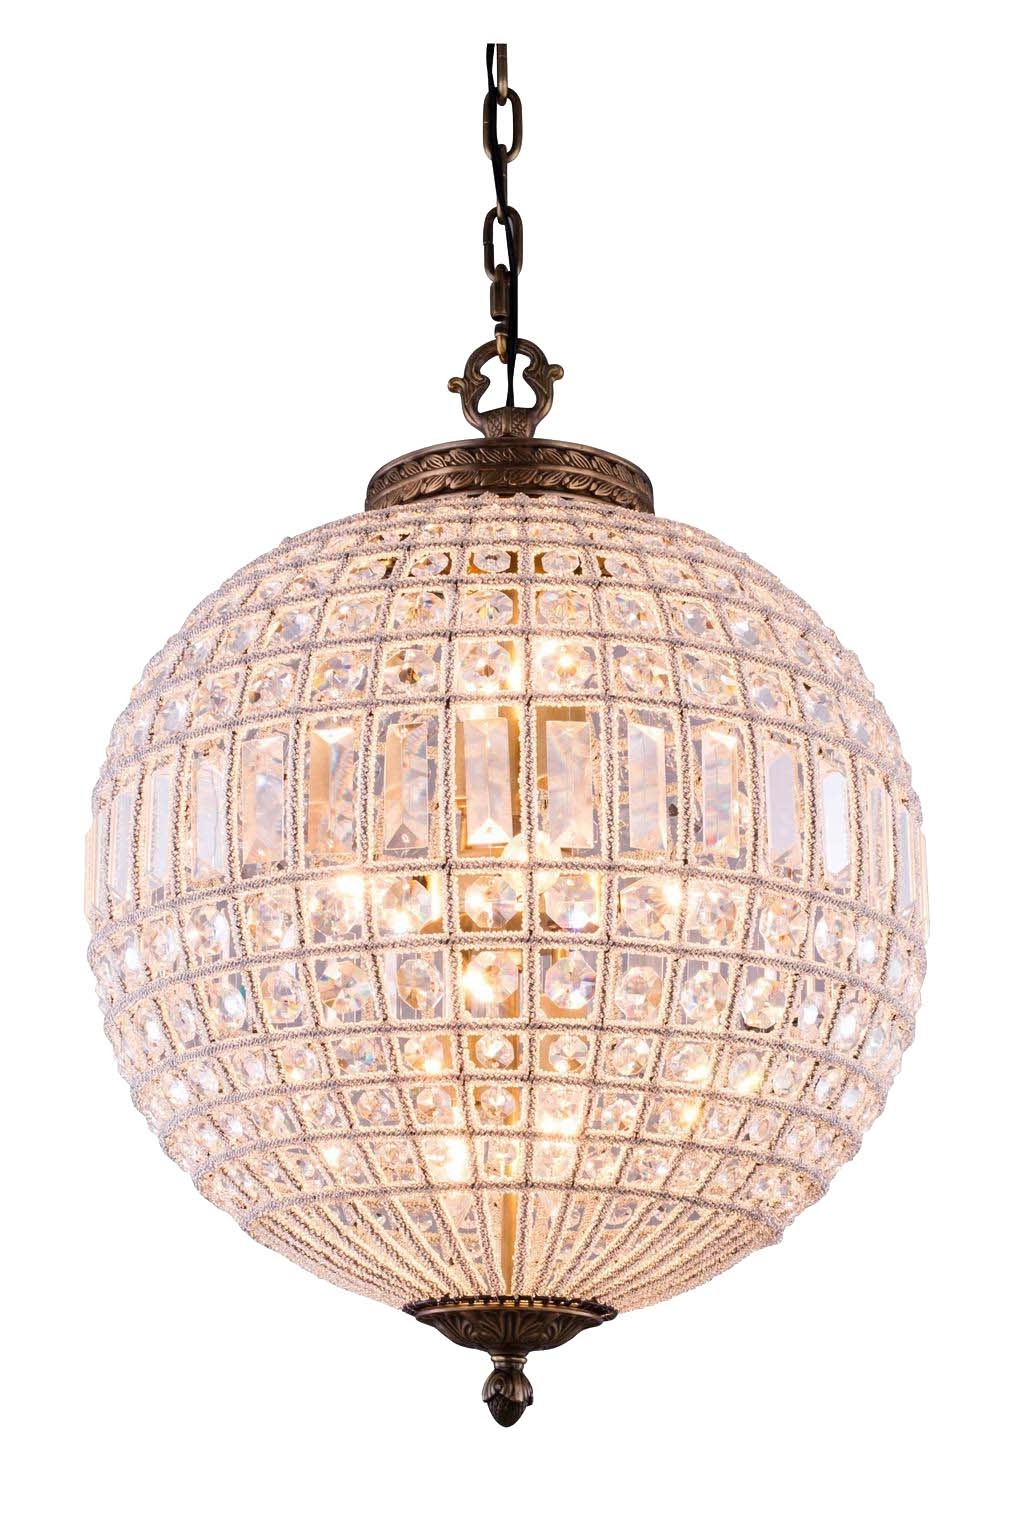 Latest Chandeliers Design : Magnificent Crystal Globe Chandelier Lucienne Intended For French Gold Chandelier (View 15 of 20)